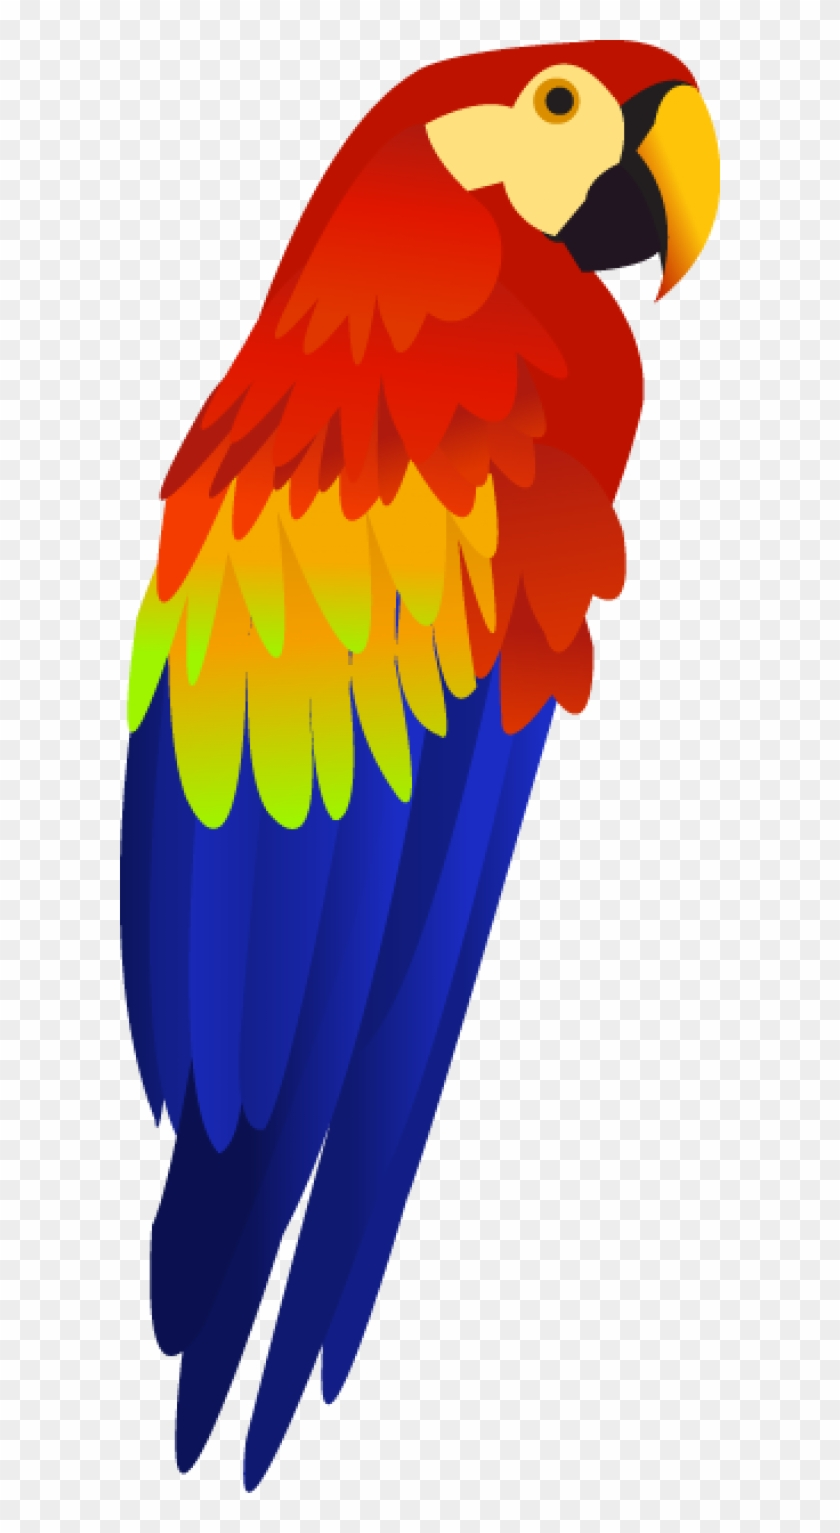 Parrot Png Free Download.